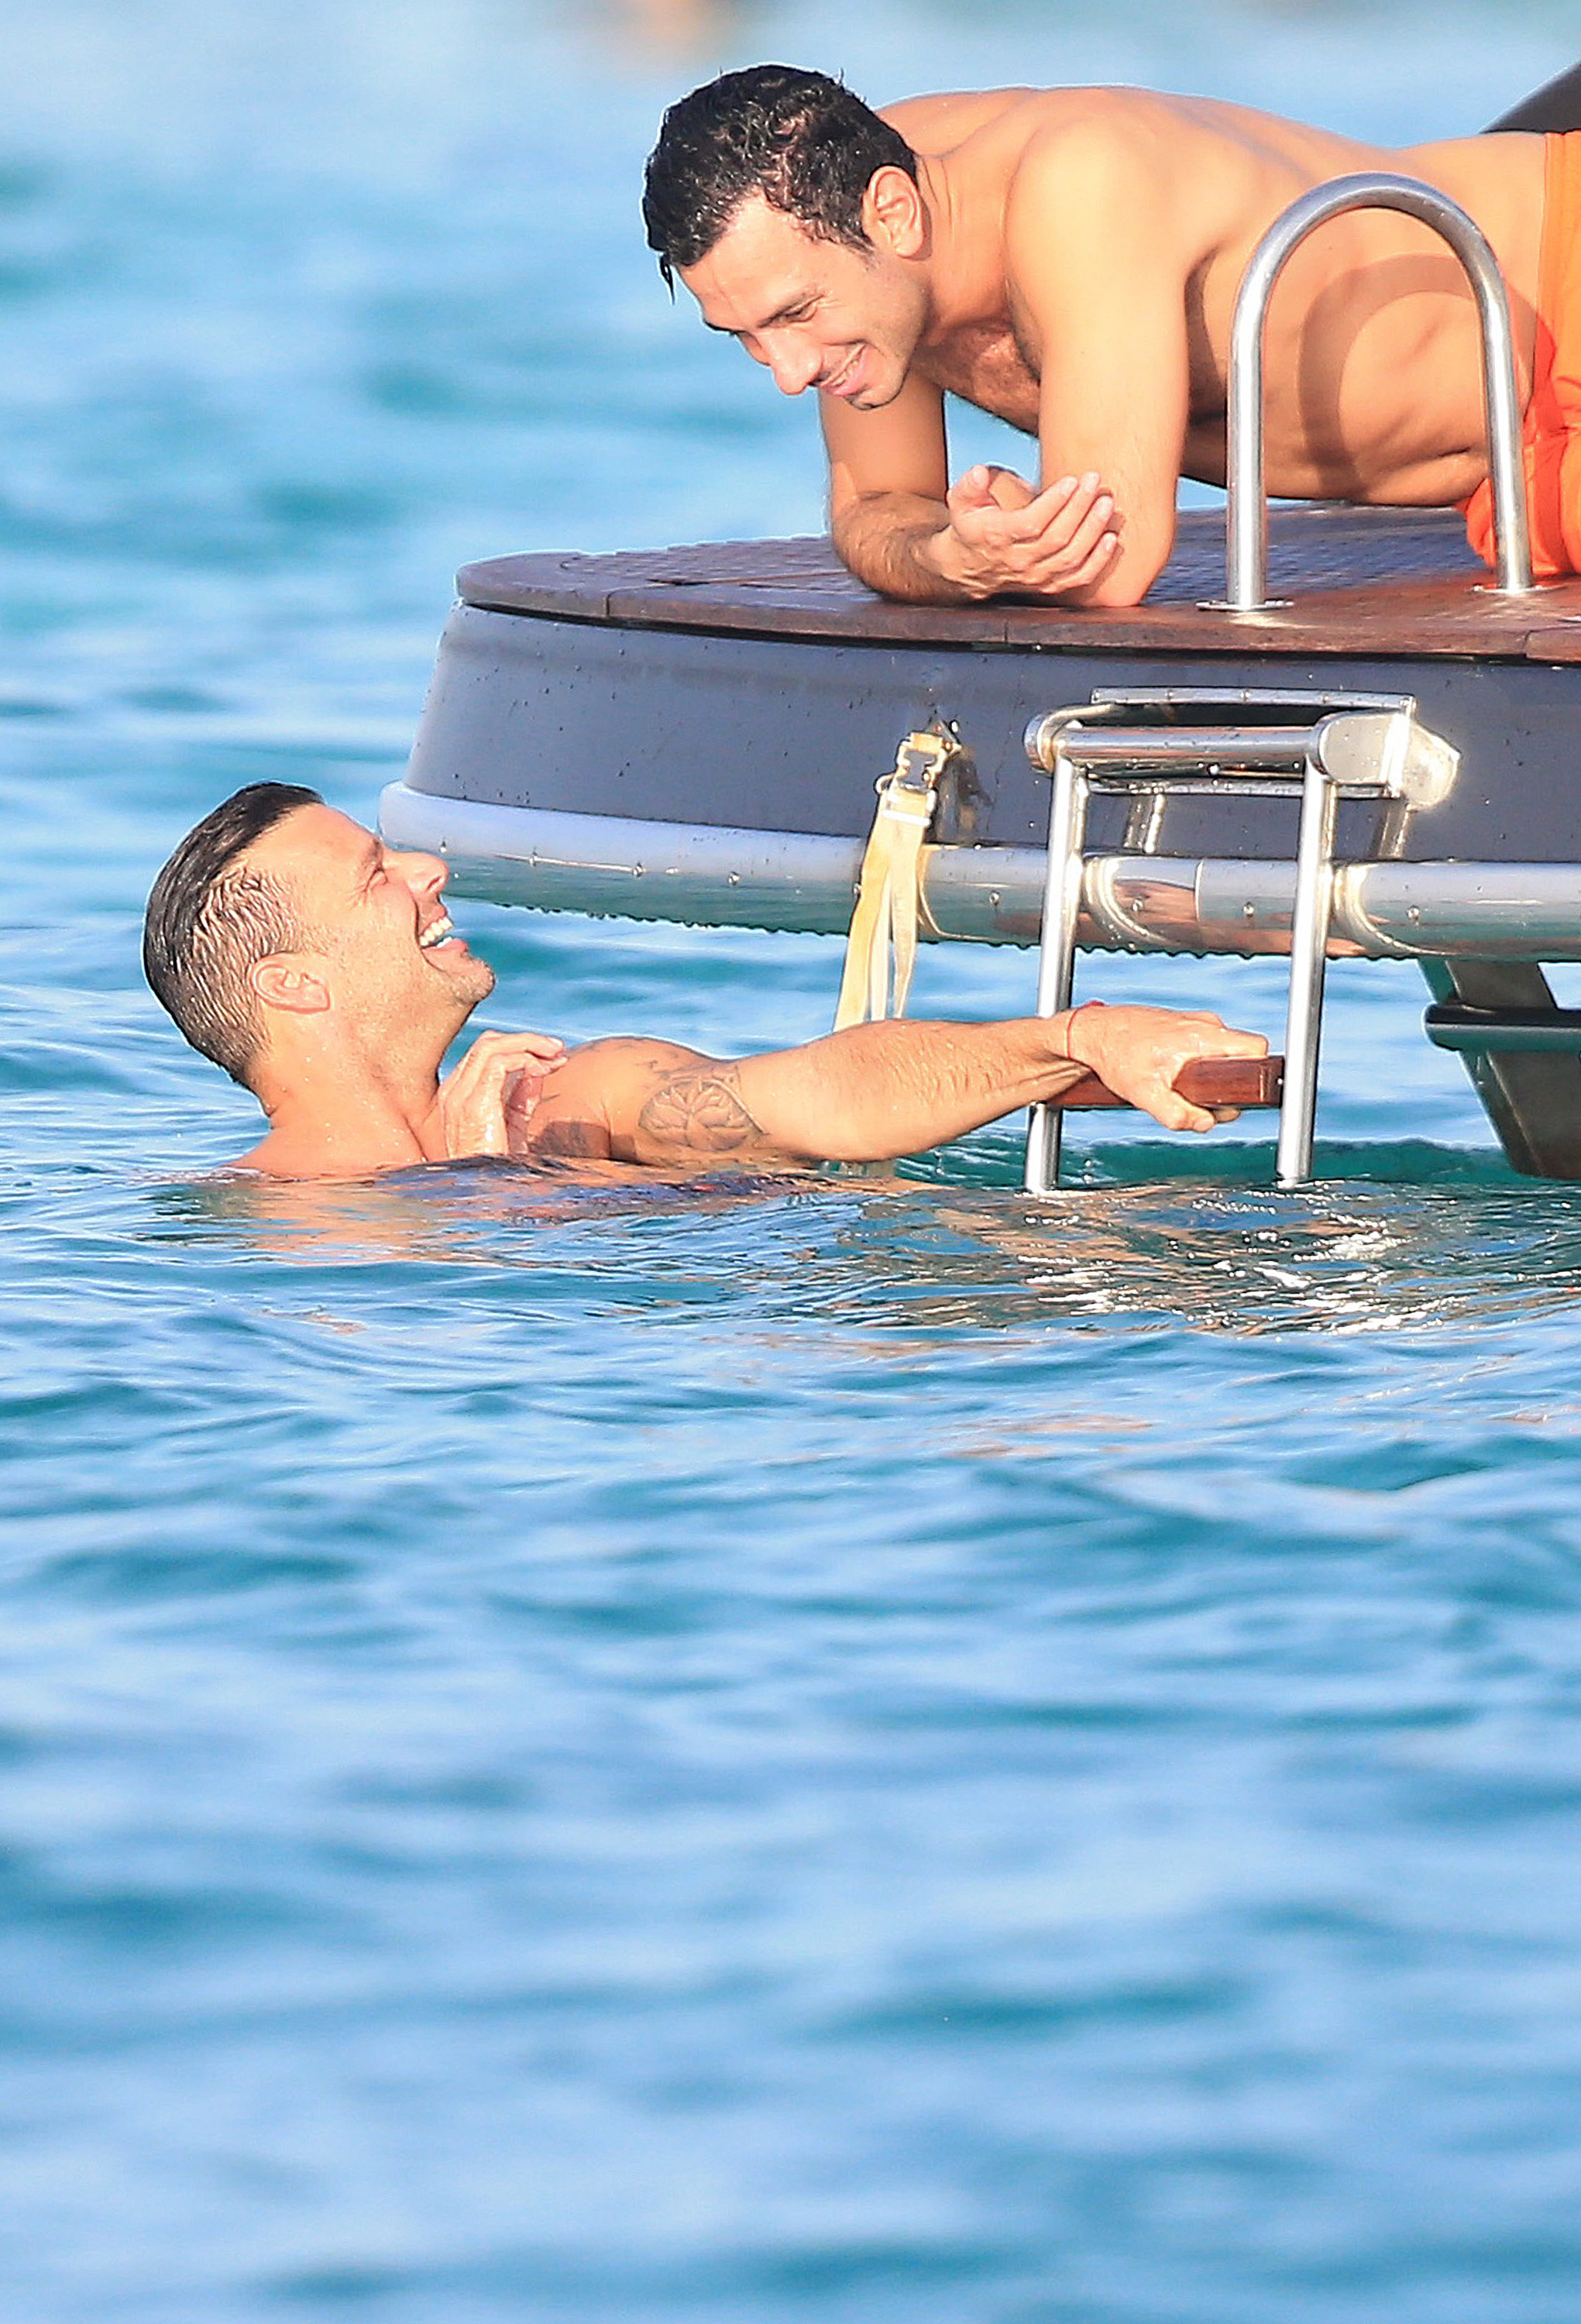 Exclusive... 52164708 Singer Ricky Martin with boyfriend Jwan Yosef and friend model Esther Canadas during holidays in Ibiza, Spain on September 6, 2016. The group enjoyed a relaxing time out on a boat. They laid out in the sun, swam, and relaxed together.  FameFlynet, Inc - Beverly Hills, CA, USA - +1 (310) 505-9876 RESTRICTIONS APPLY: USA/AUSTRALIA ONLY